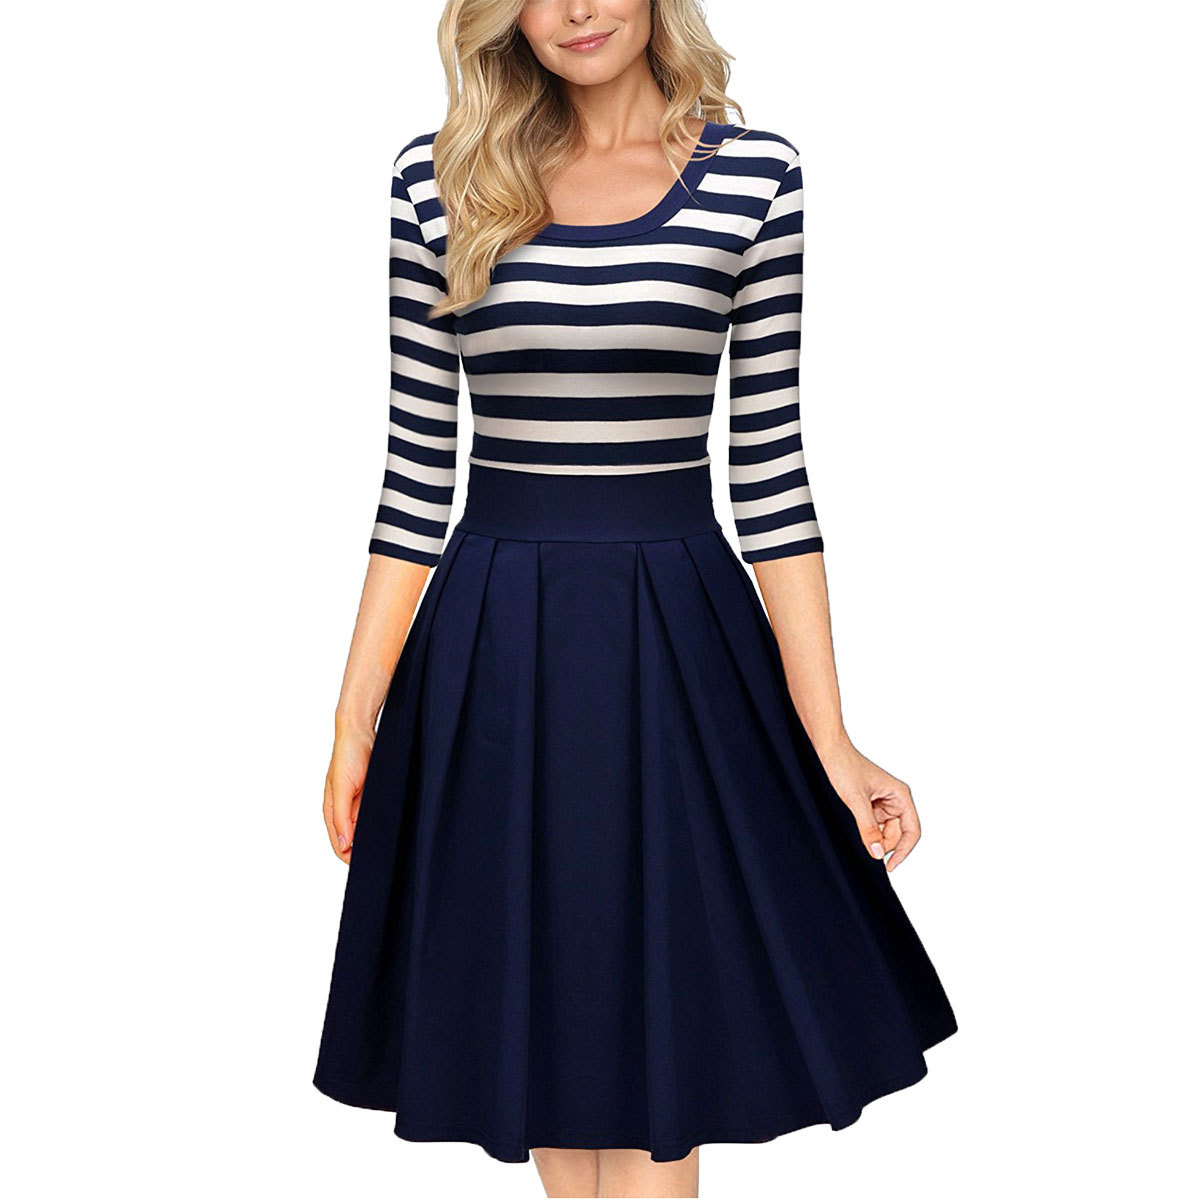 White and Blue Patchwork Color Dress for Women Retro A Line Girl Casual Robe Femme Tunic Three Quarter Sleeve Striped Dressses